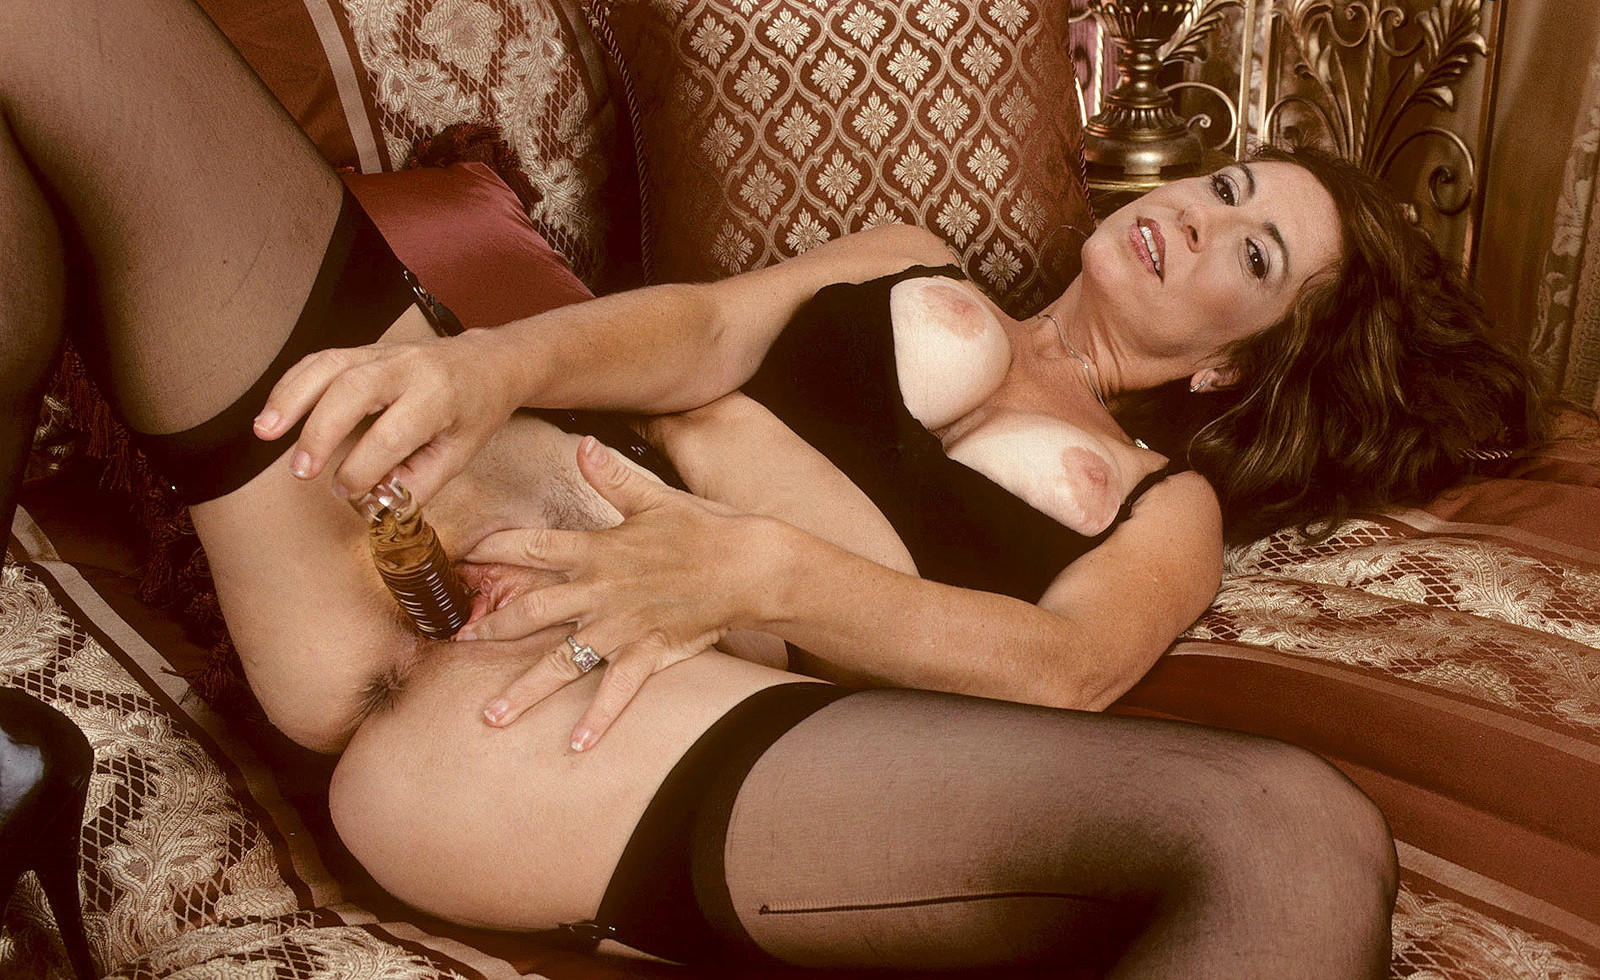 Mary Lou Retton Nude Sex Tube Videos And Pictures